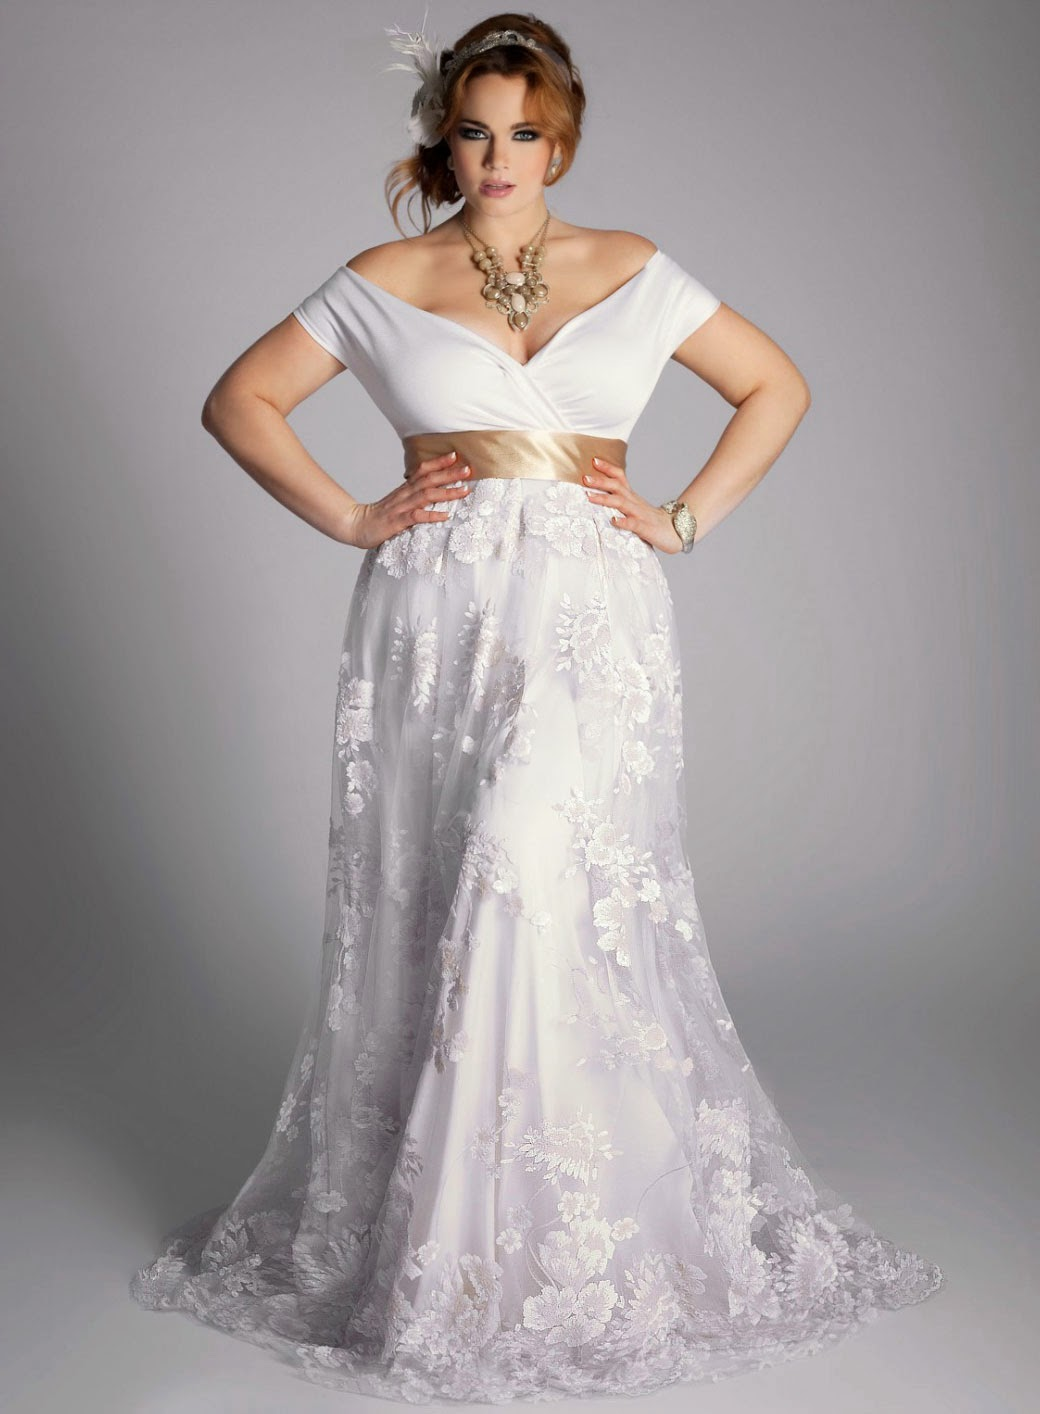 White casual plus size wedding dresses design ideas for Wedding dress plus size